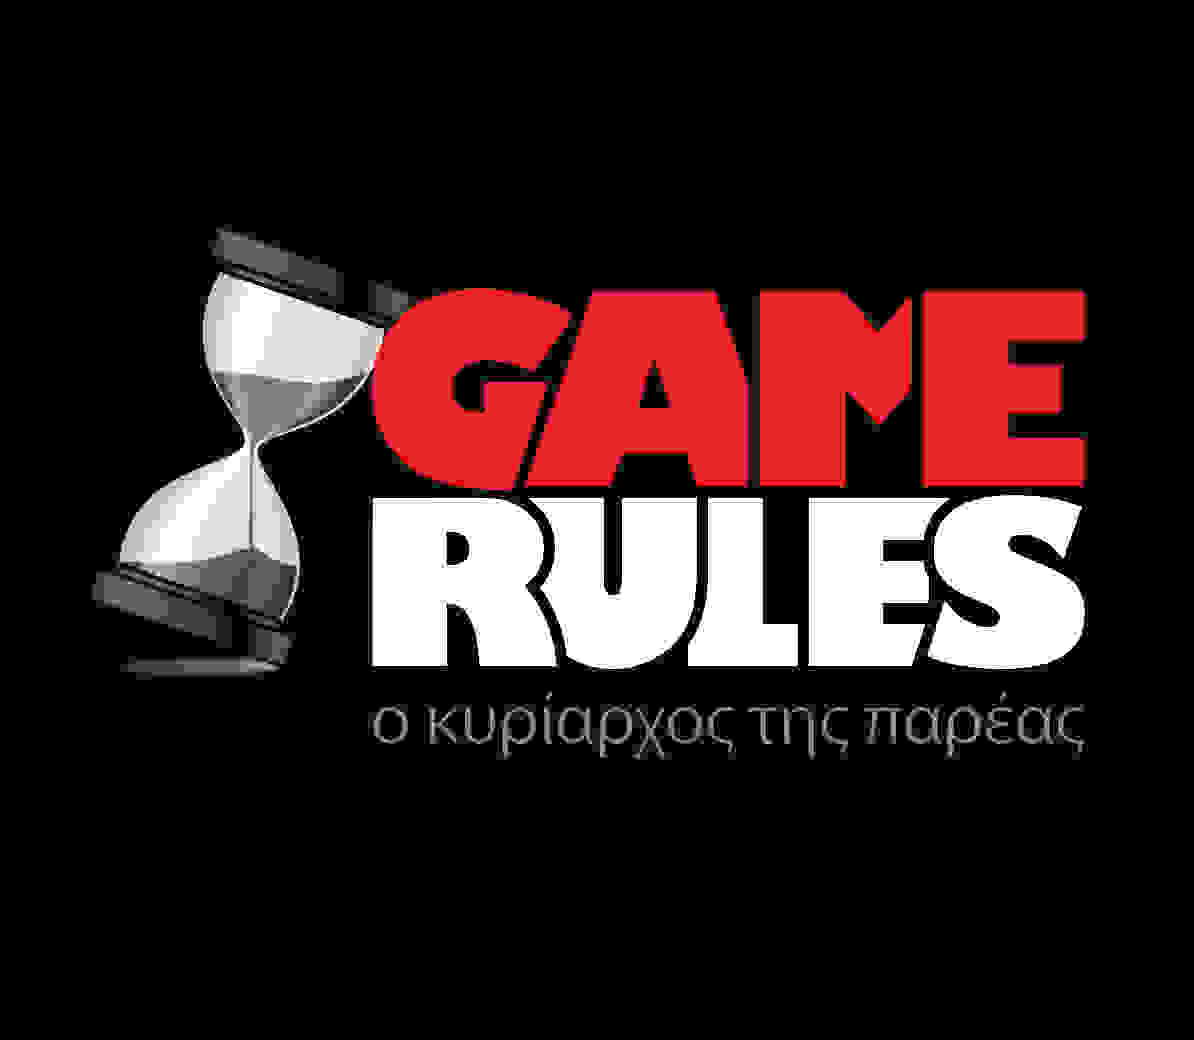 GAME-RULES-LOGO-BLACK-360x313